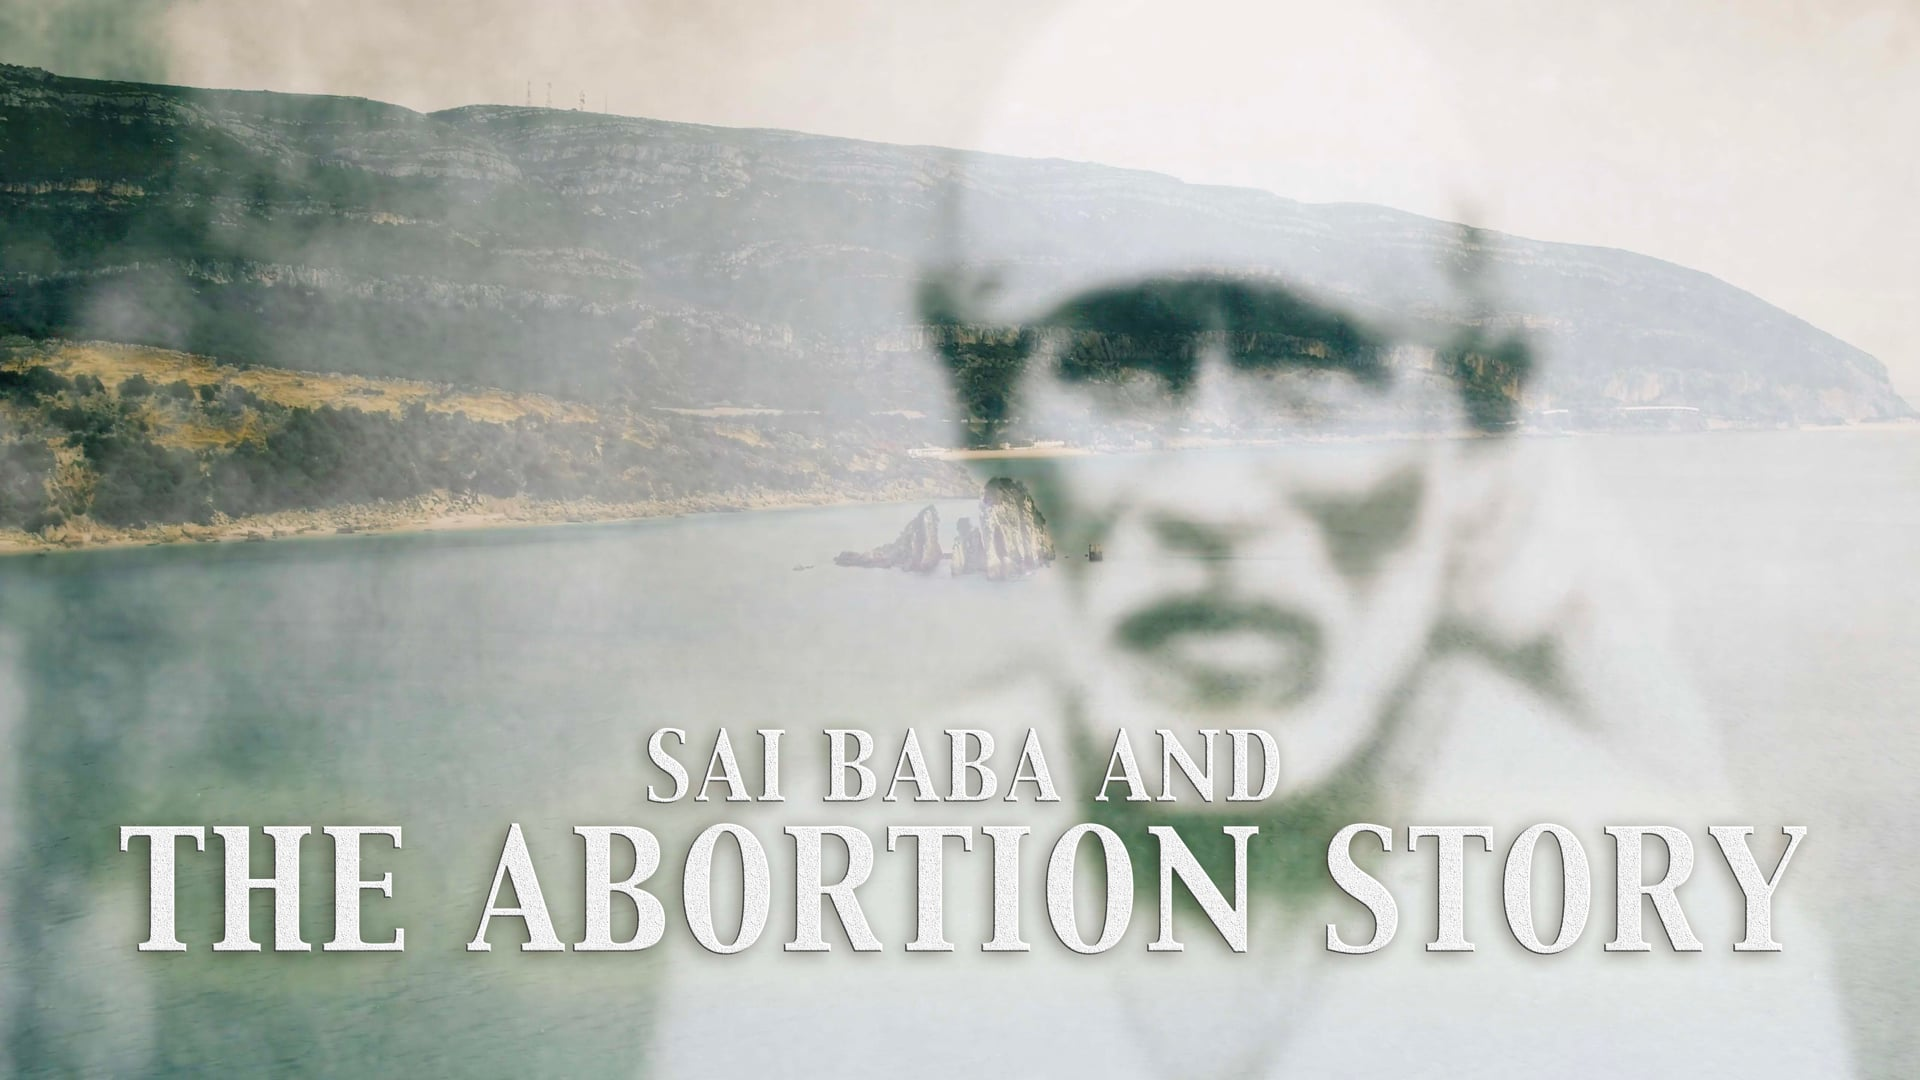 Sai Baba and The Abortion Story